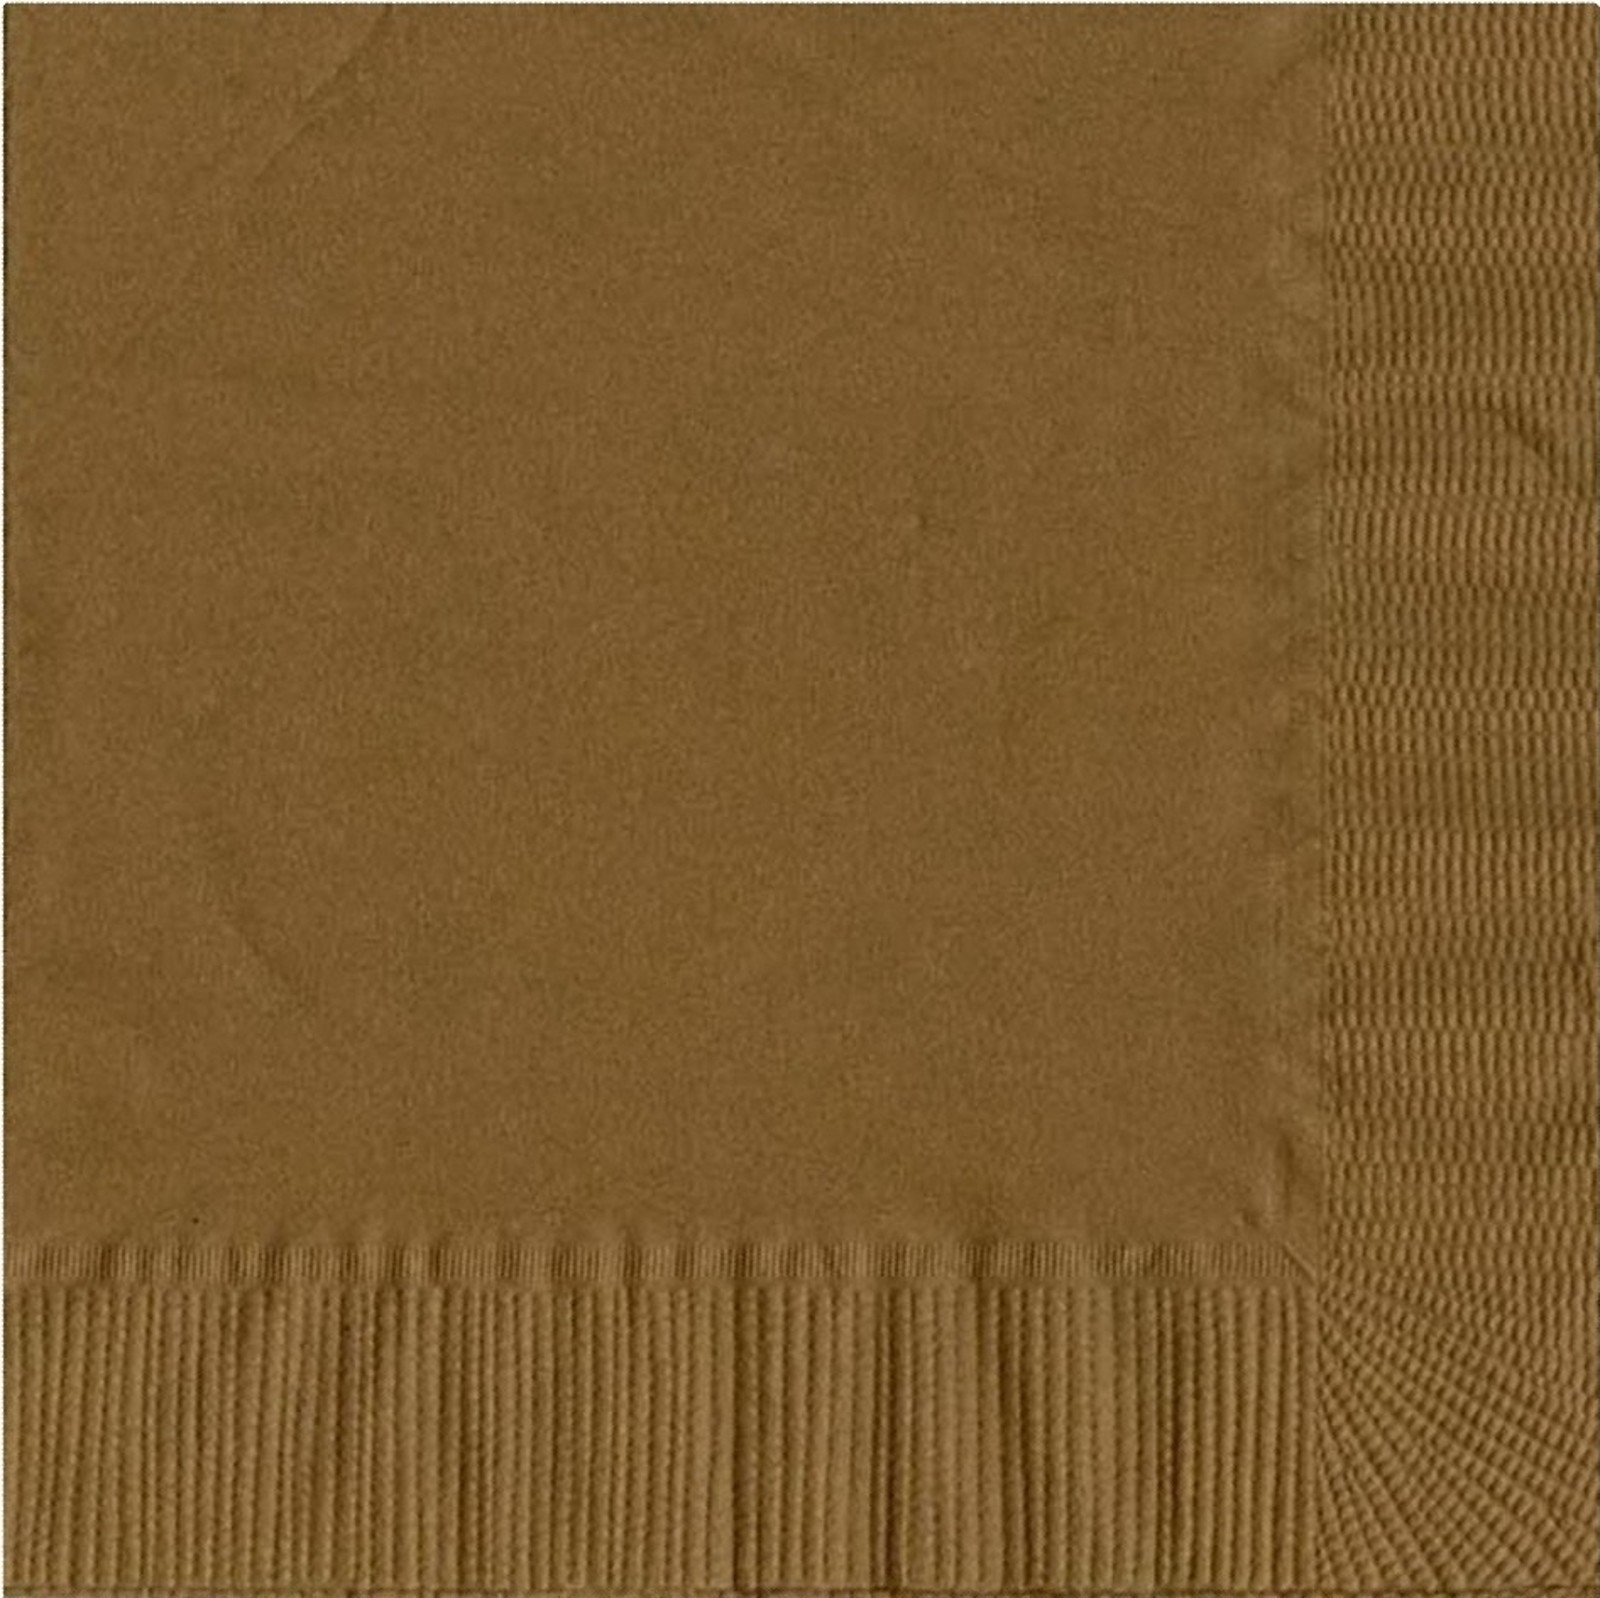 50 Plain Solid Colors Luncheon Dinner Napkins Paper - Gold